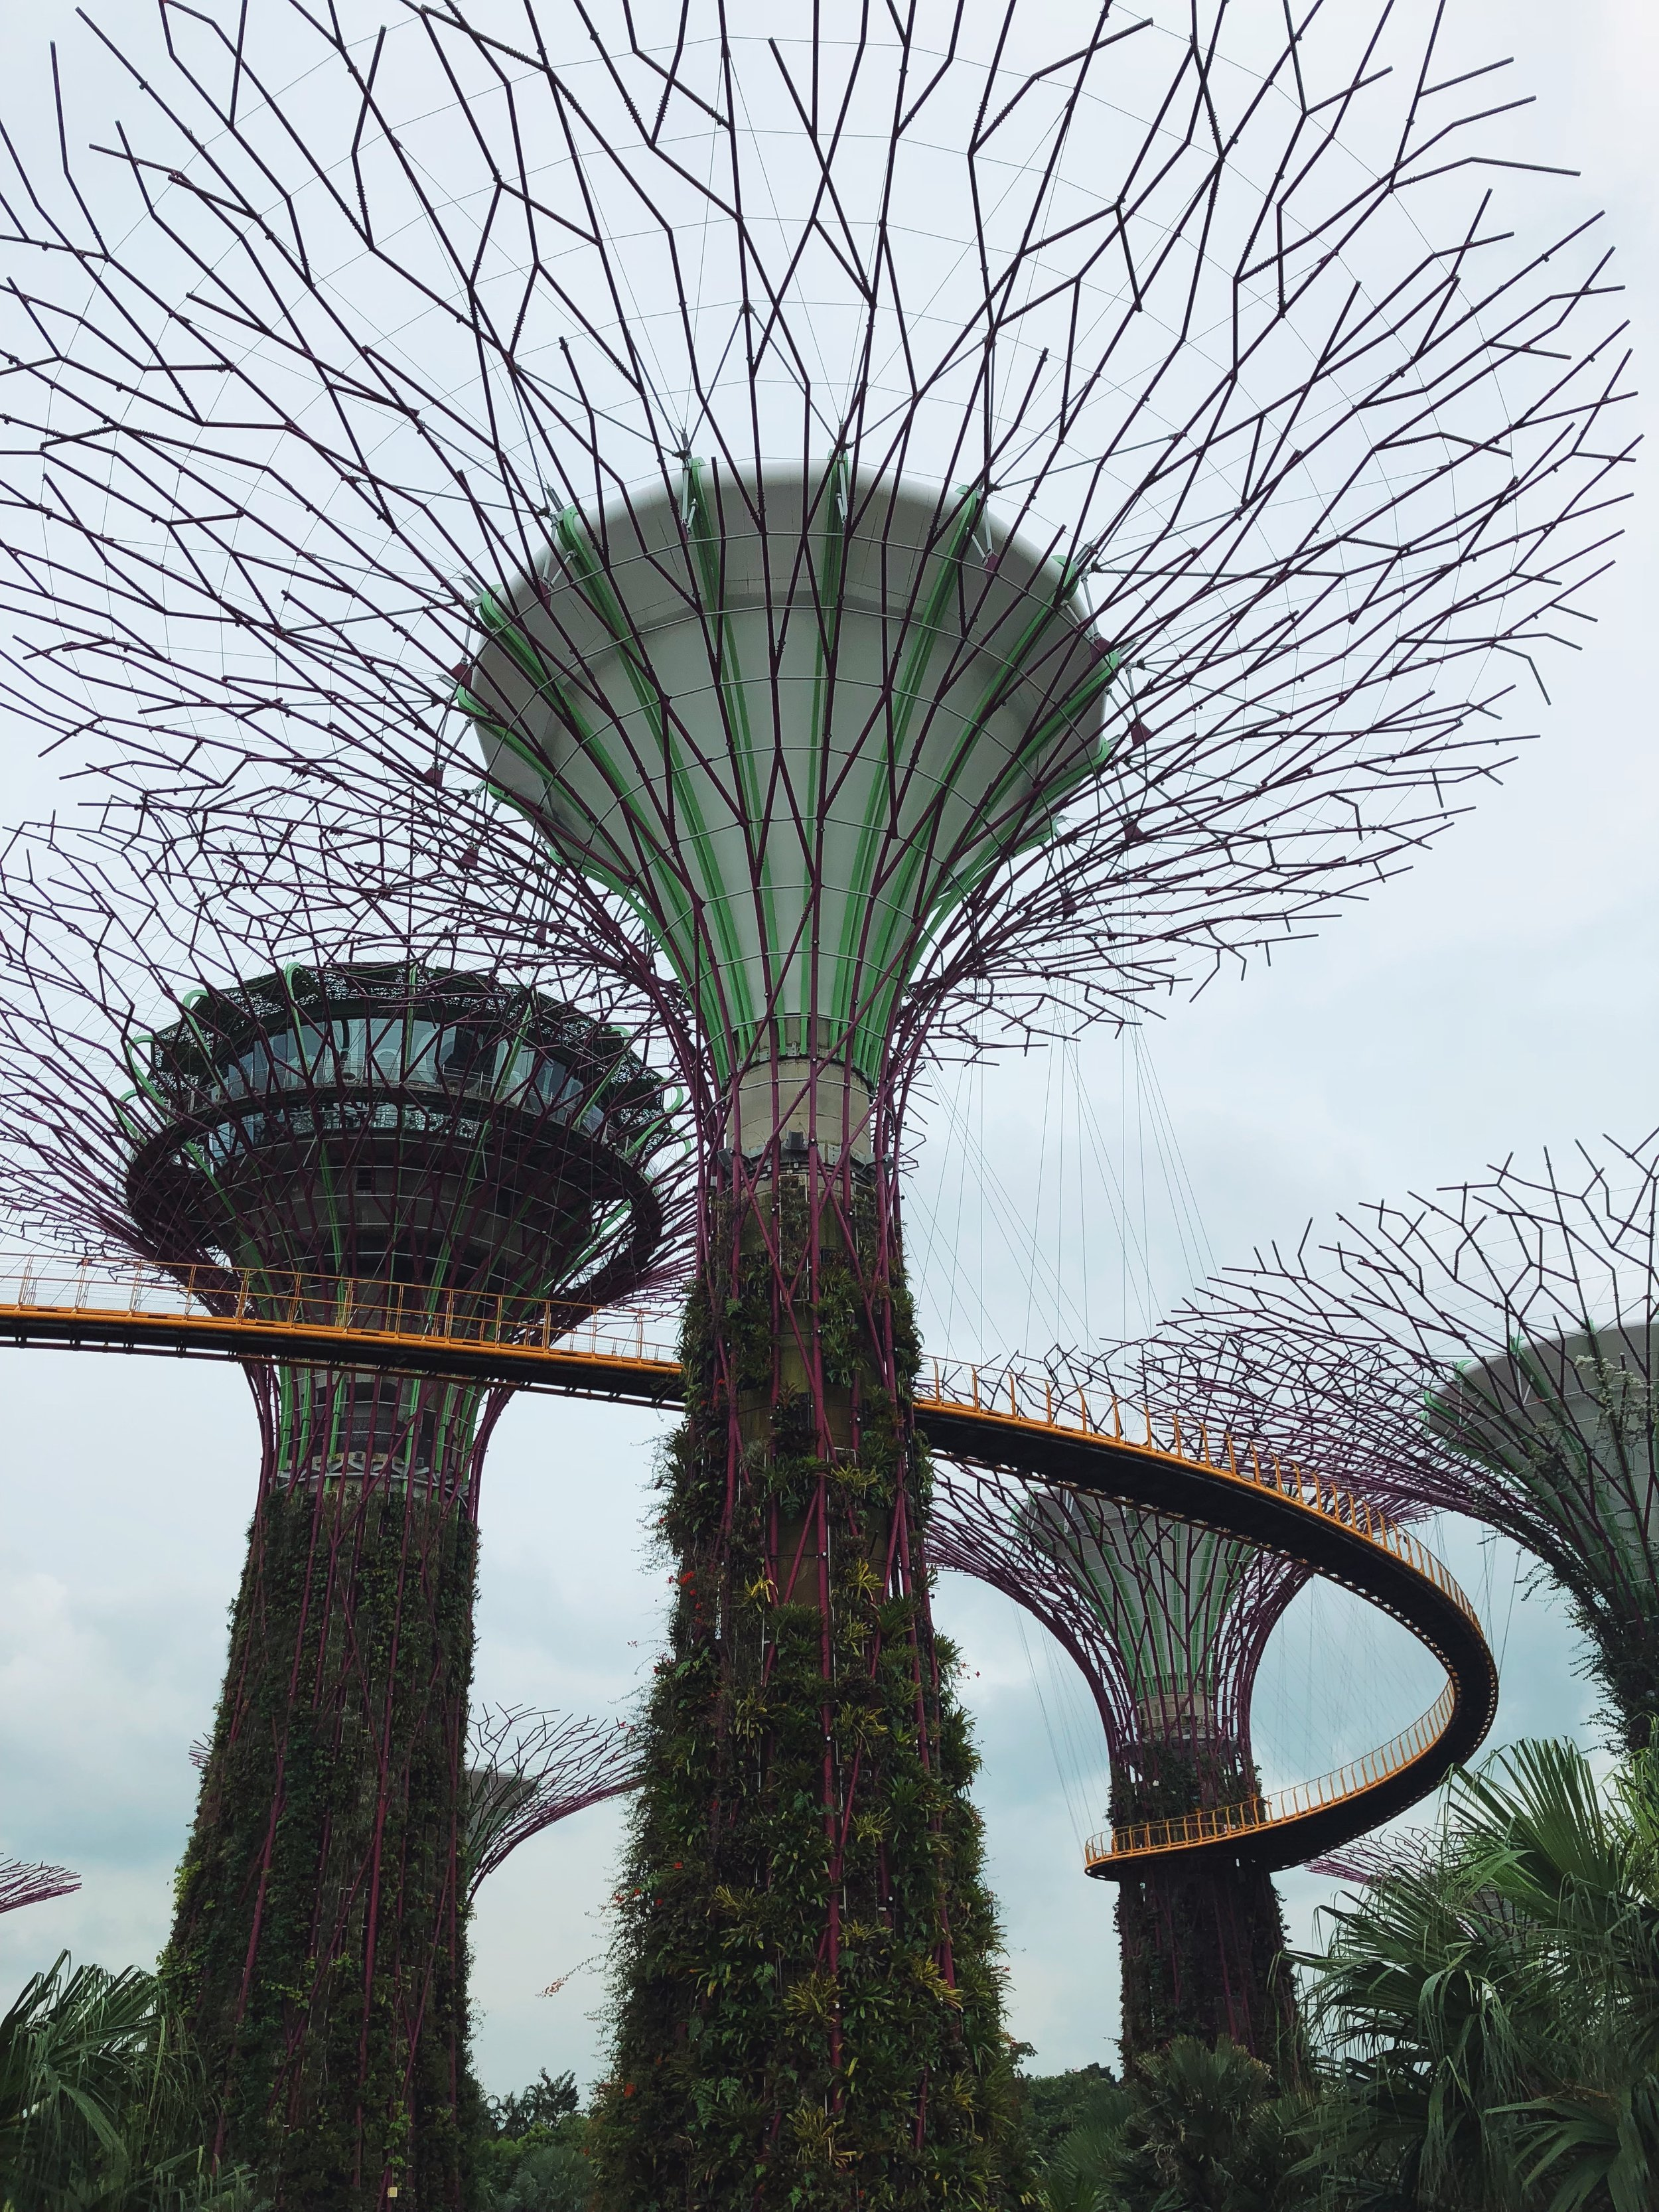 - After purchasing my ticket for the Gardens by the Bay (about $30 USD/ $38 AUD) and gawking at the Supertree Grove, I made my way to Satay by the Bay to try some of Singapore's famous chicken rice.